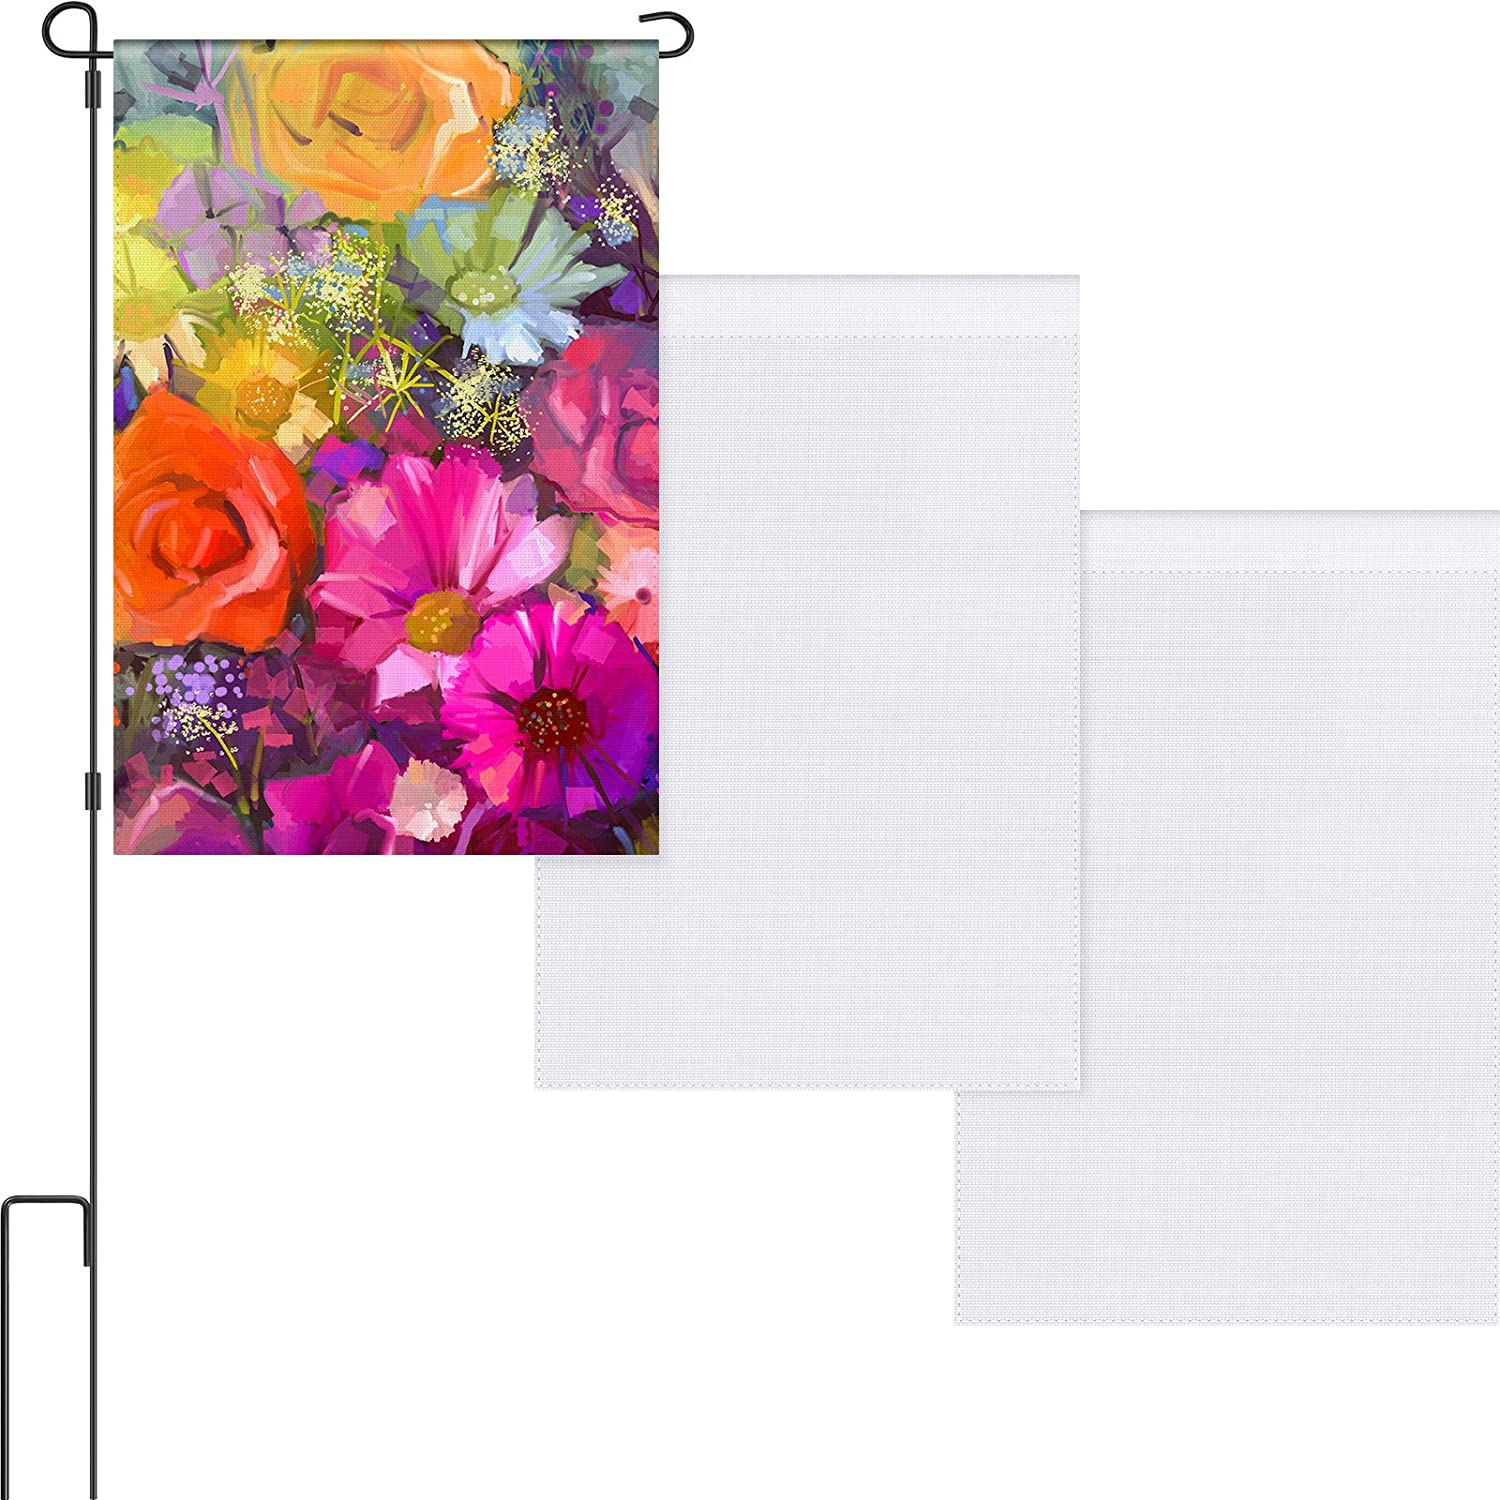 Double Sided Garden Flag Blank DIY Flag Solid White Flag House Garden Decorative Flag for Vinyl (HTV), Indoor Outdoor Party Decoration, Home Decoration, School Decoration (3)